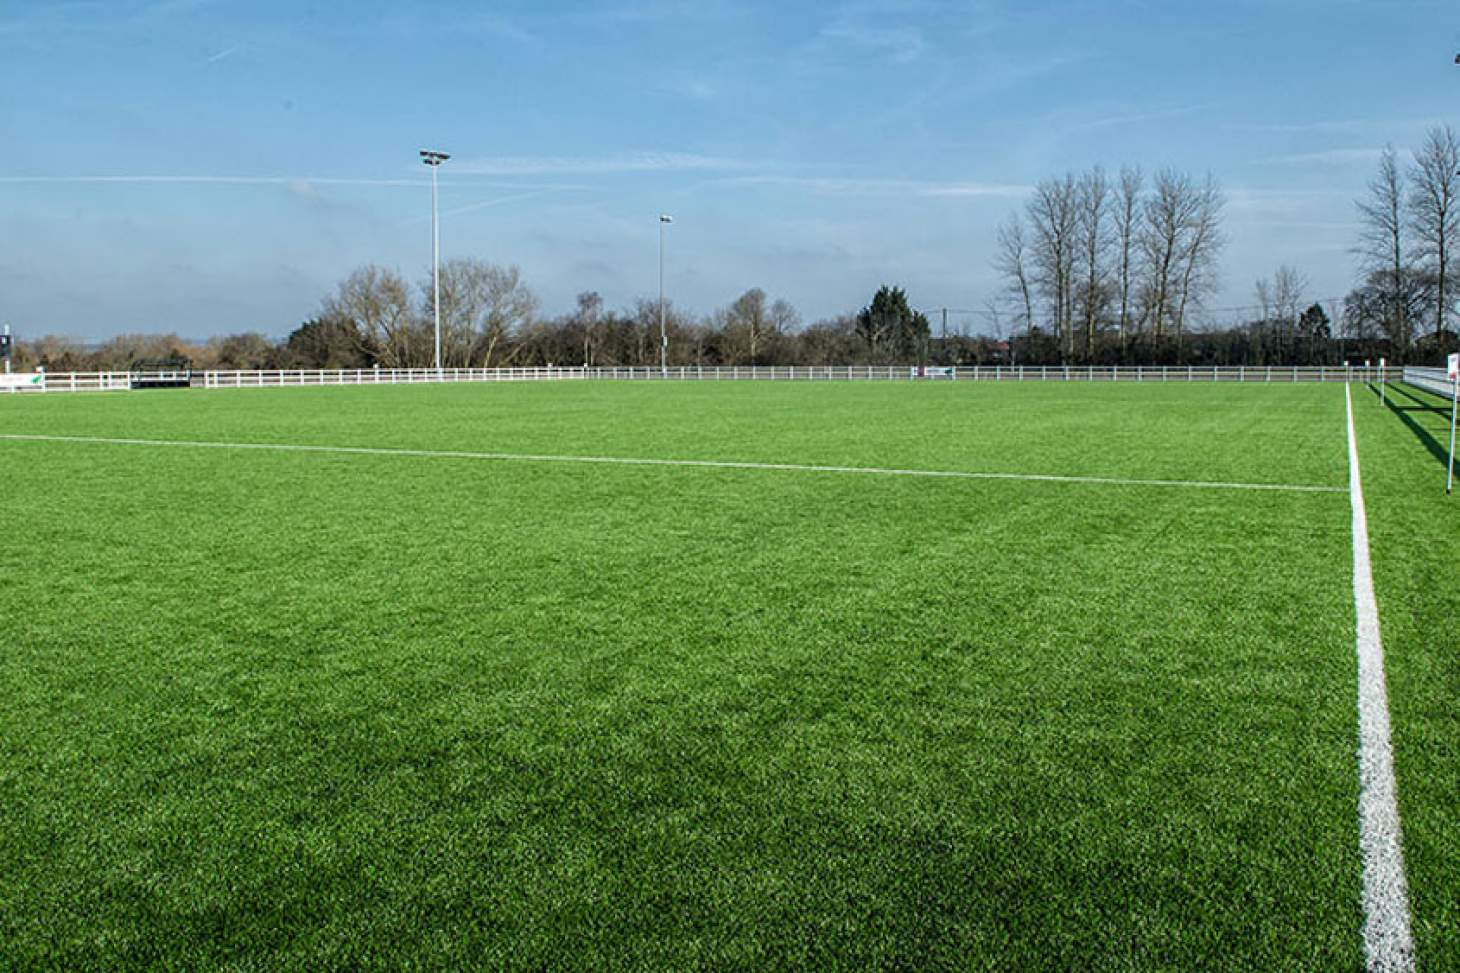 PlayFootball Whitley Bay 8 a side | 3G Astroturf football pitch